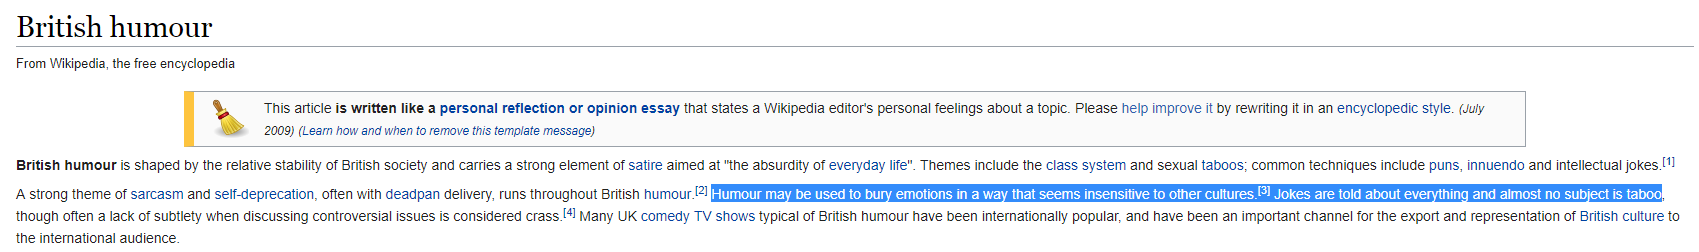 british humour.png